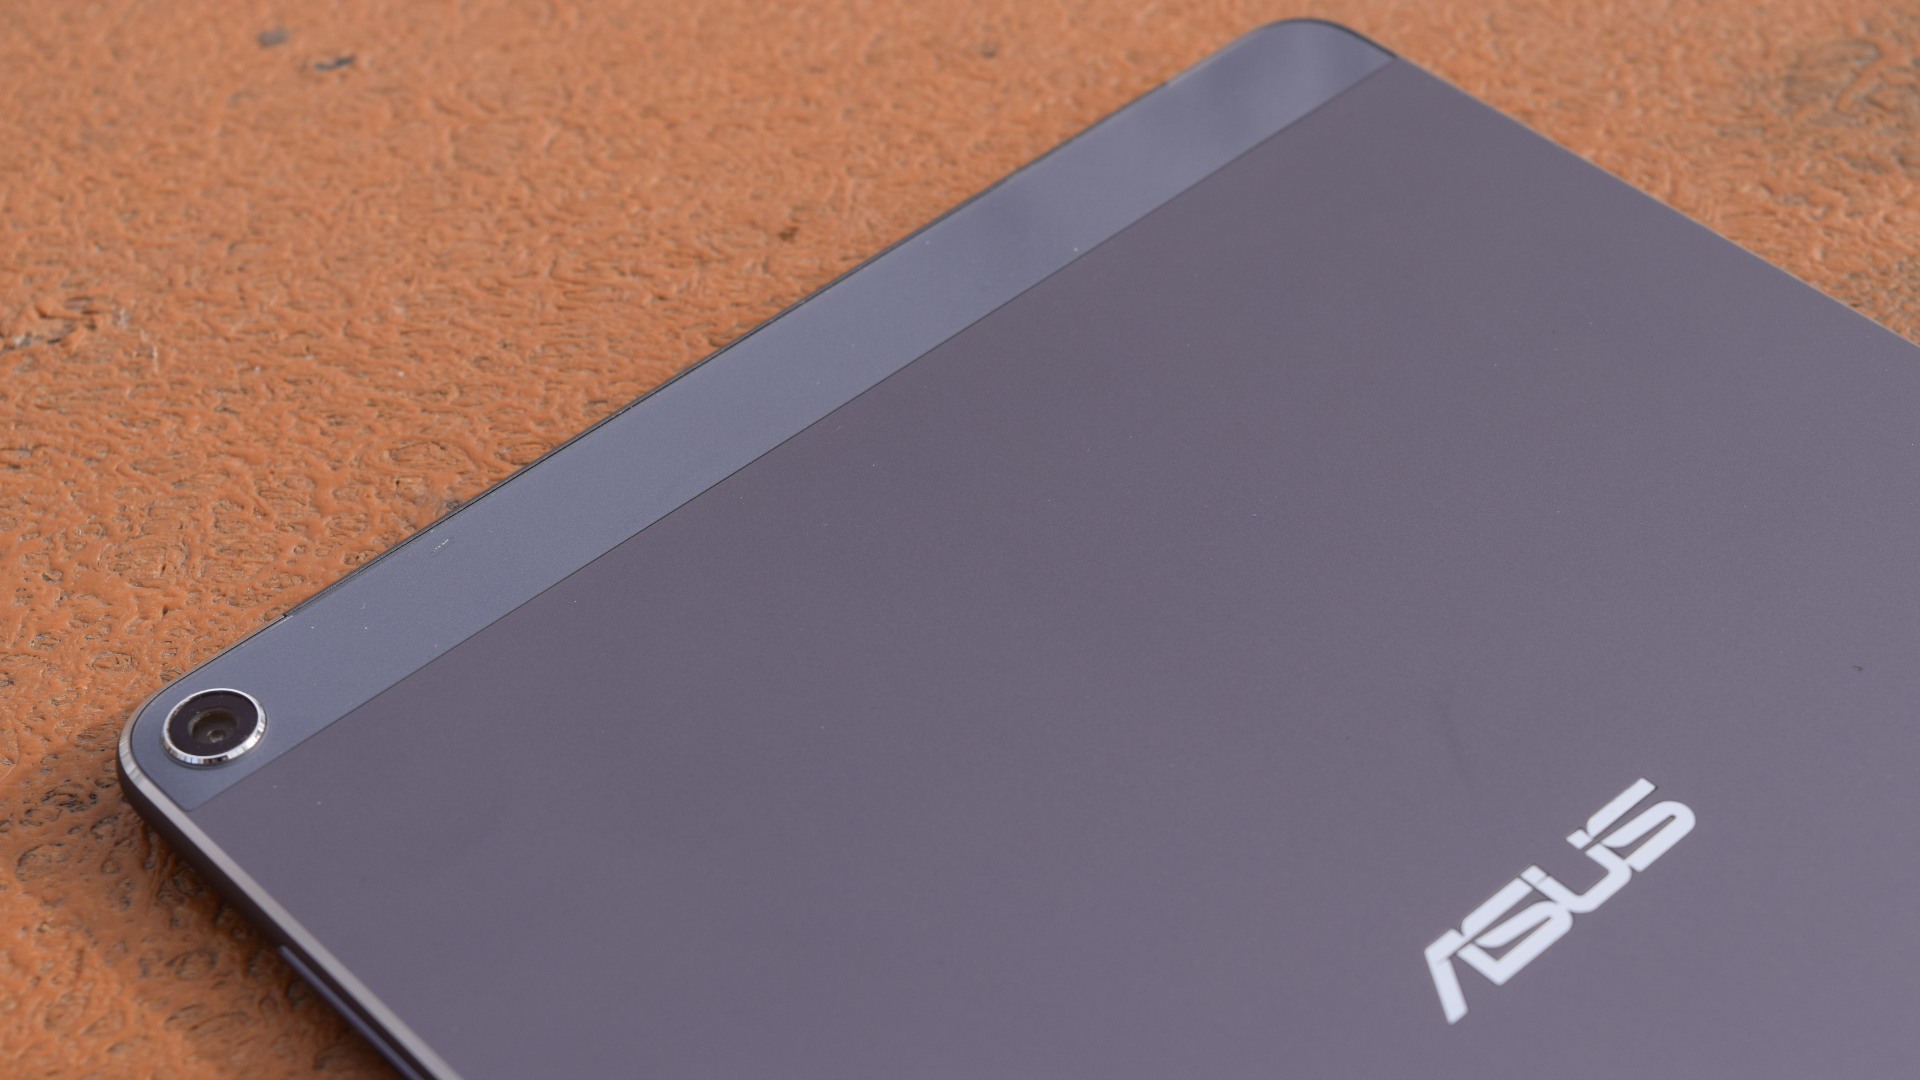 Verizon's ASUS ZenPad Z10 gets upgraded to Android 7 0 Nougat